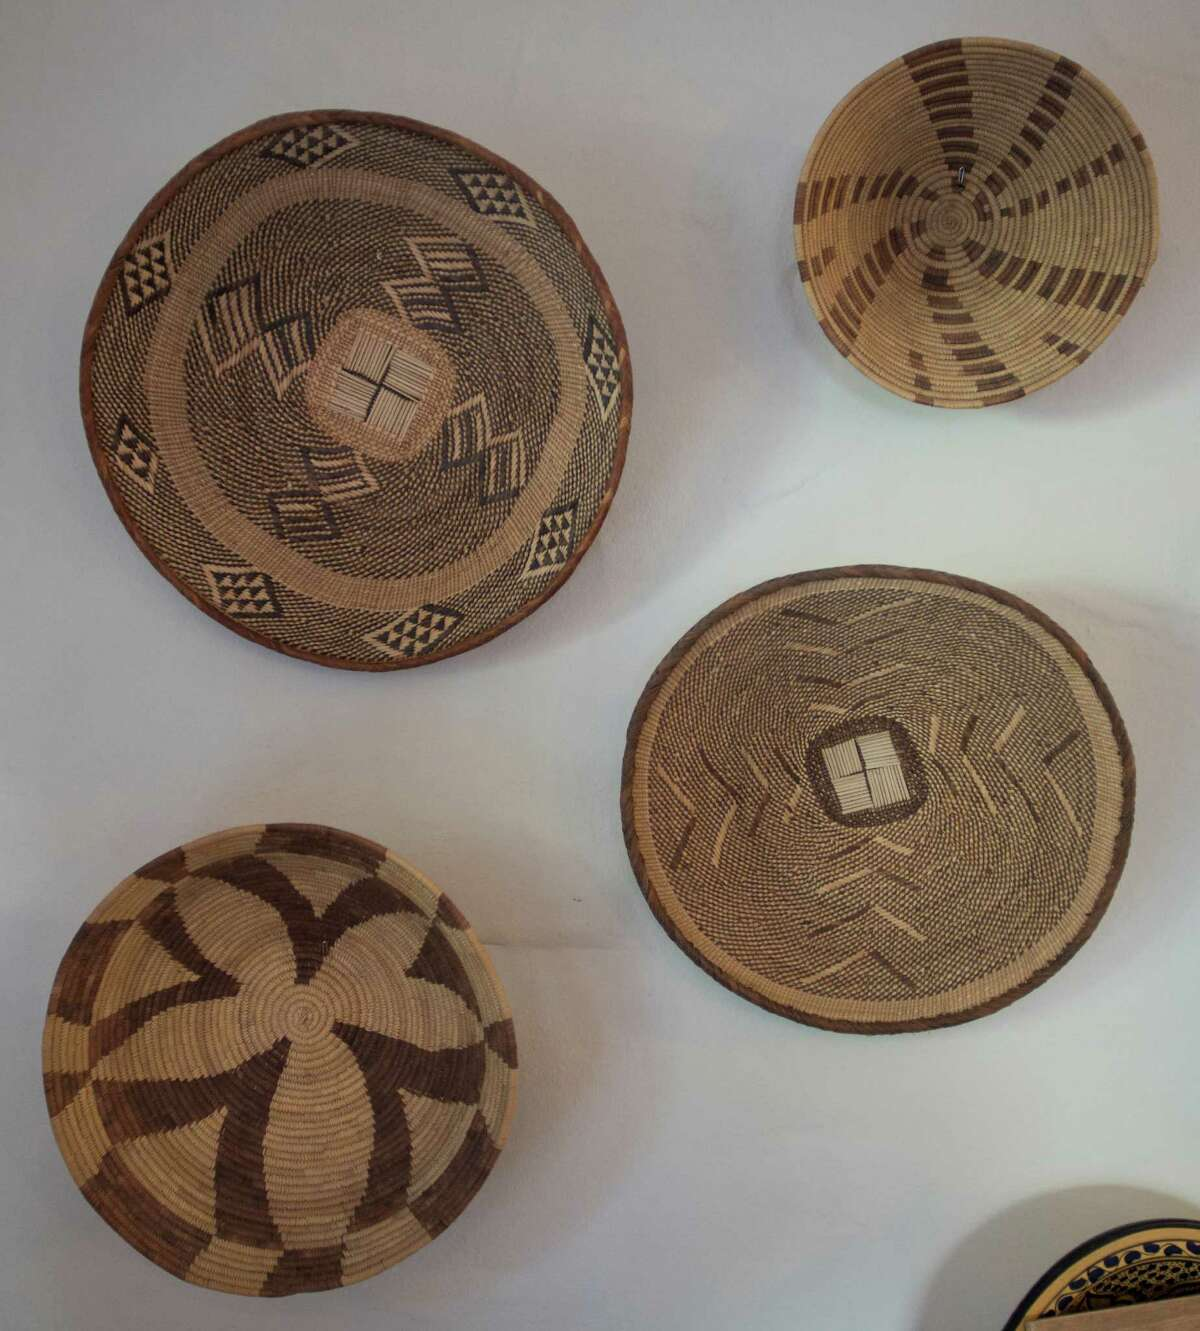 Baskets are among the items Kirstin Silberschlag and Luke Bovenzi collect and display in their home.